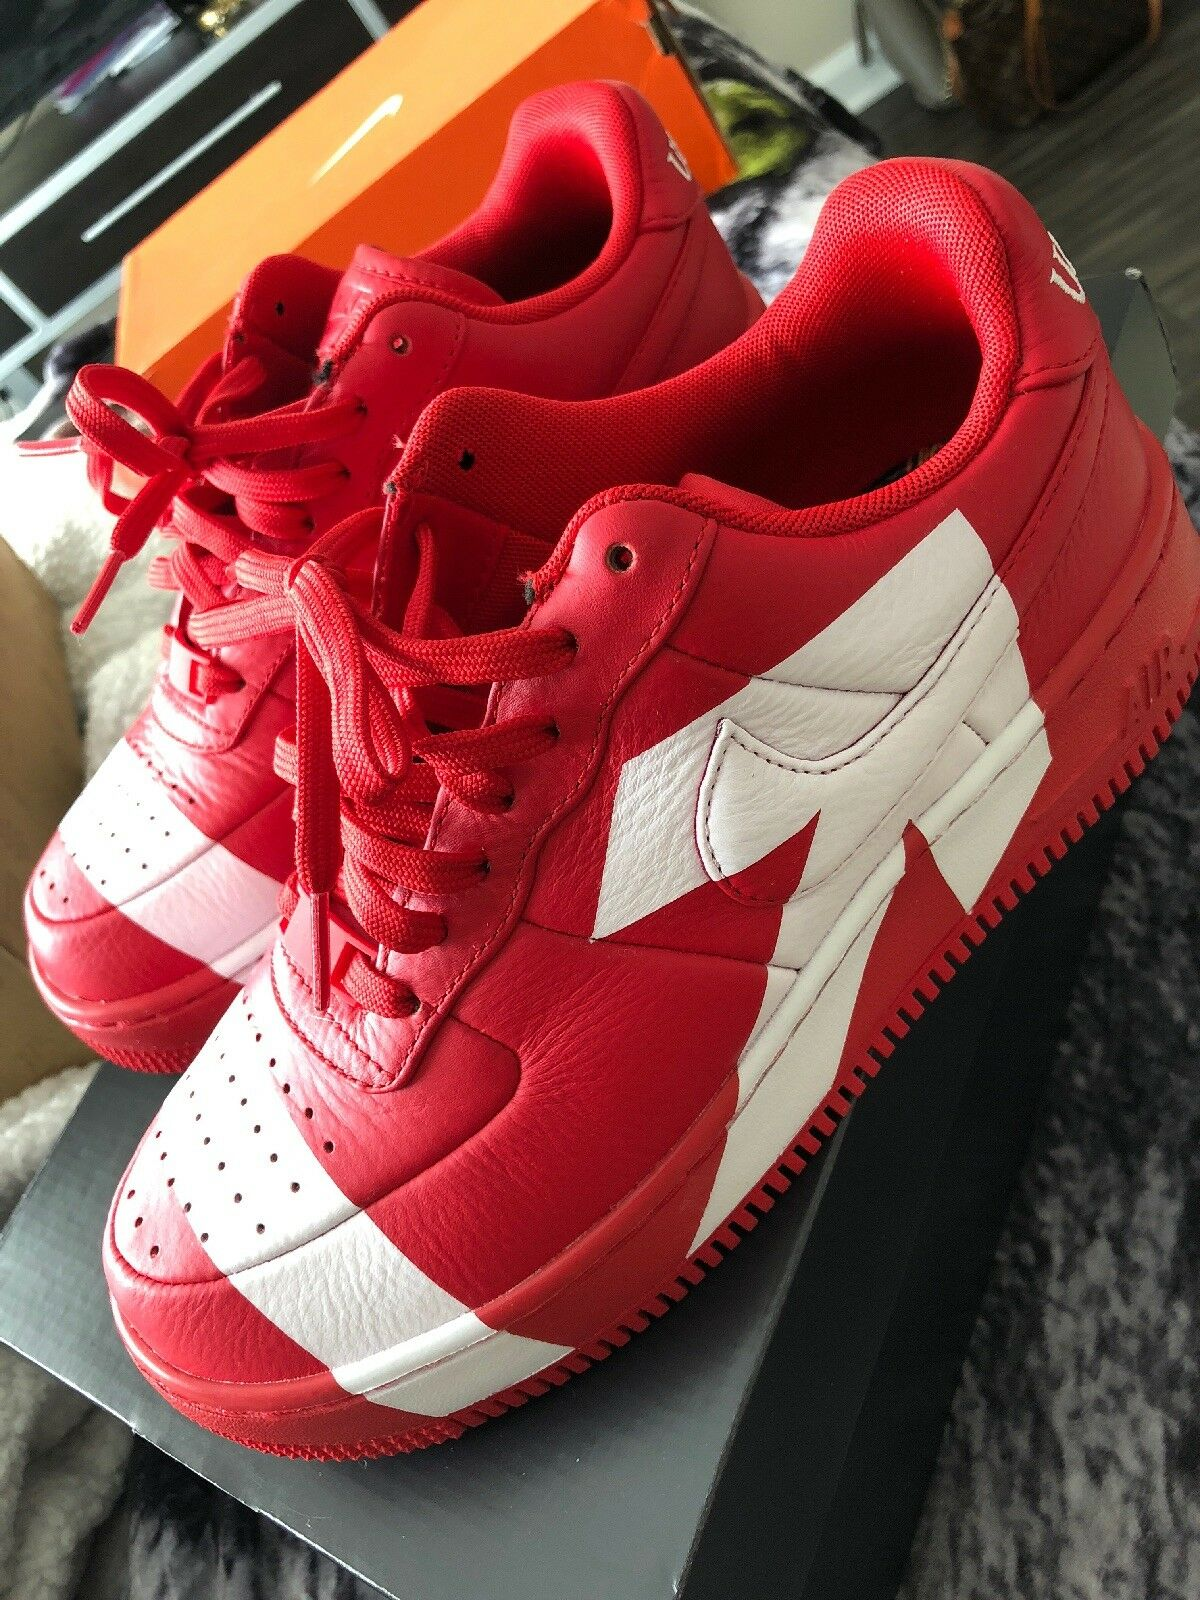 Nike air force 1 upstep lx RED Uptown Size 7 SOLD OUT